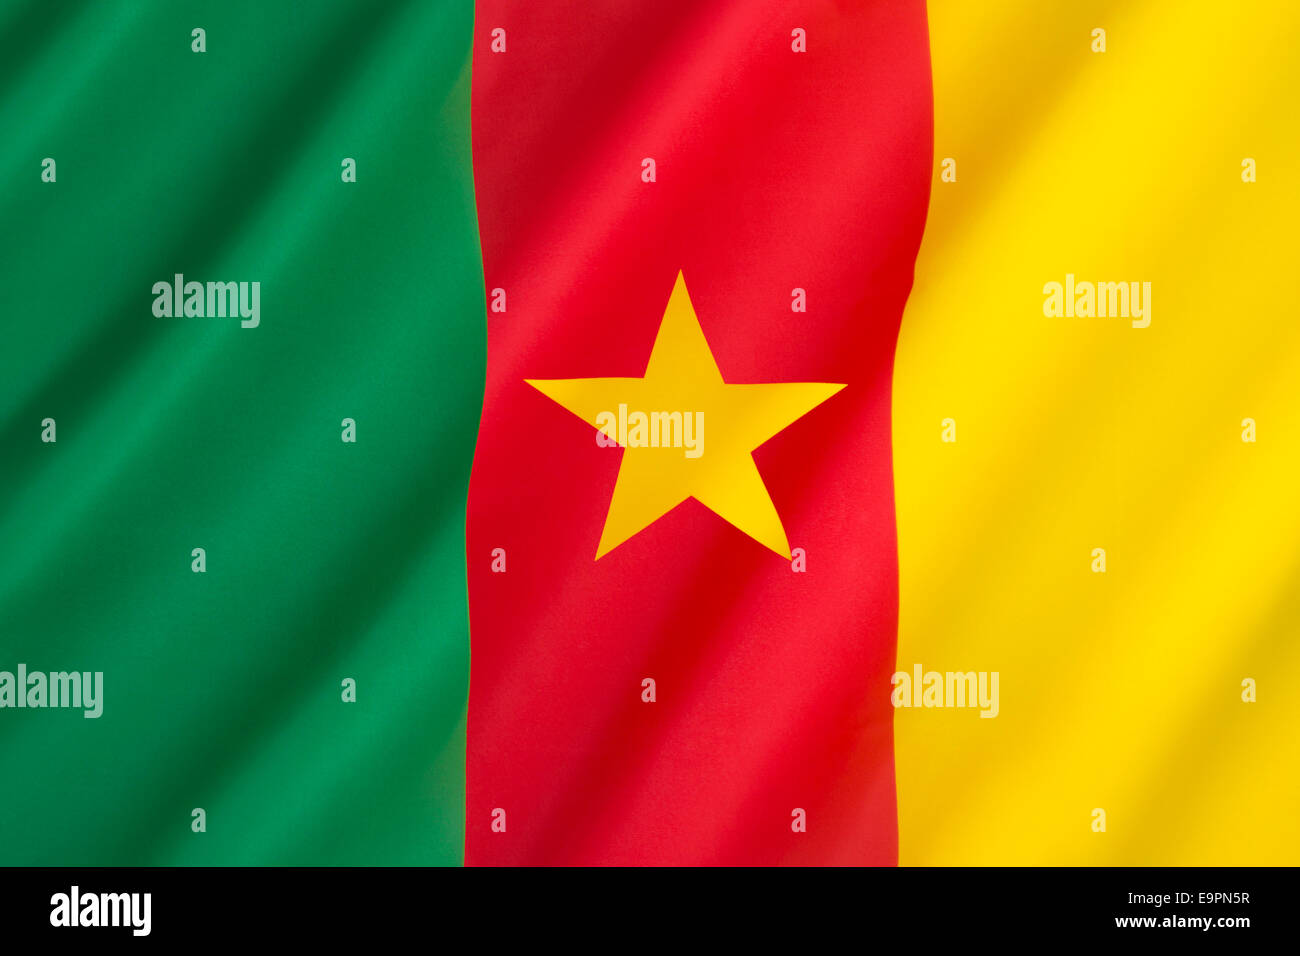 Flag of Cameroon - Stock Image